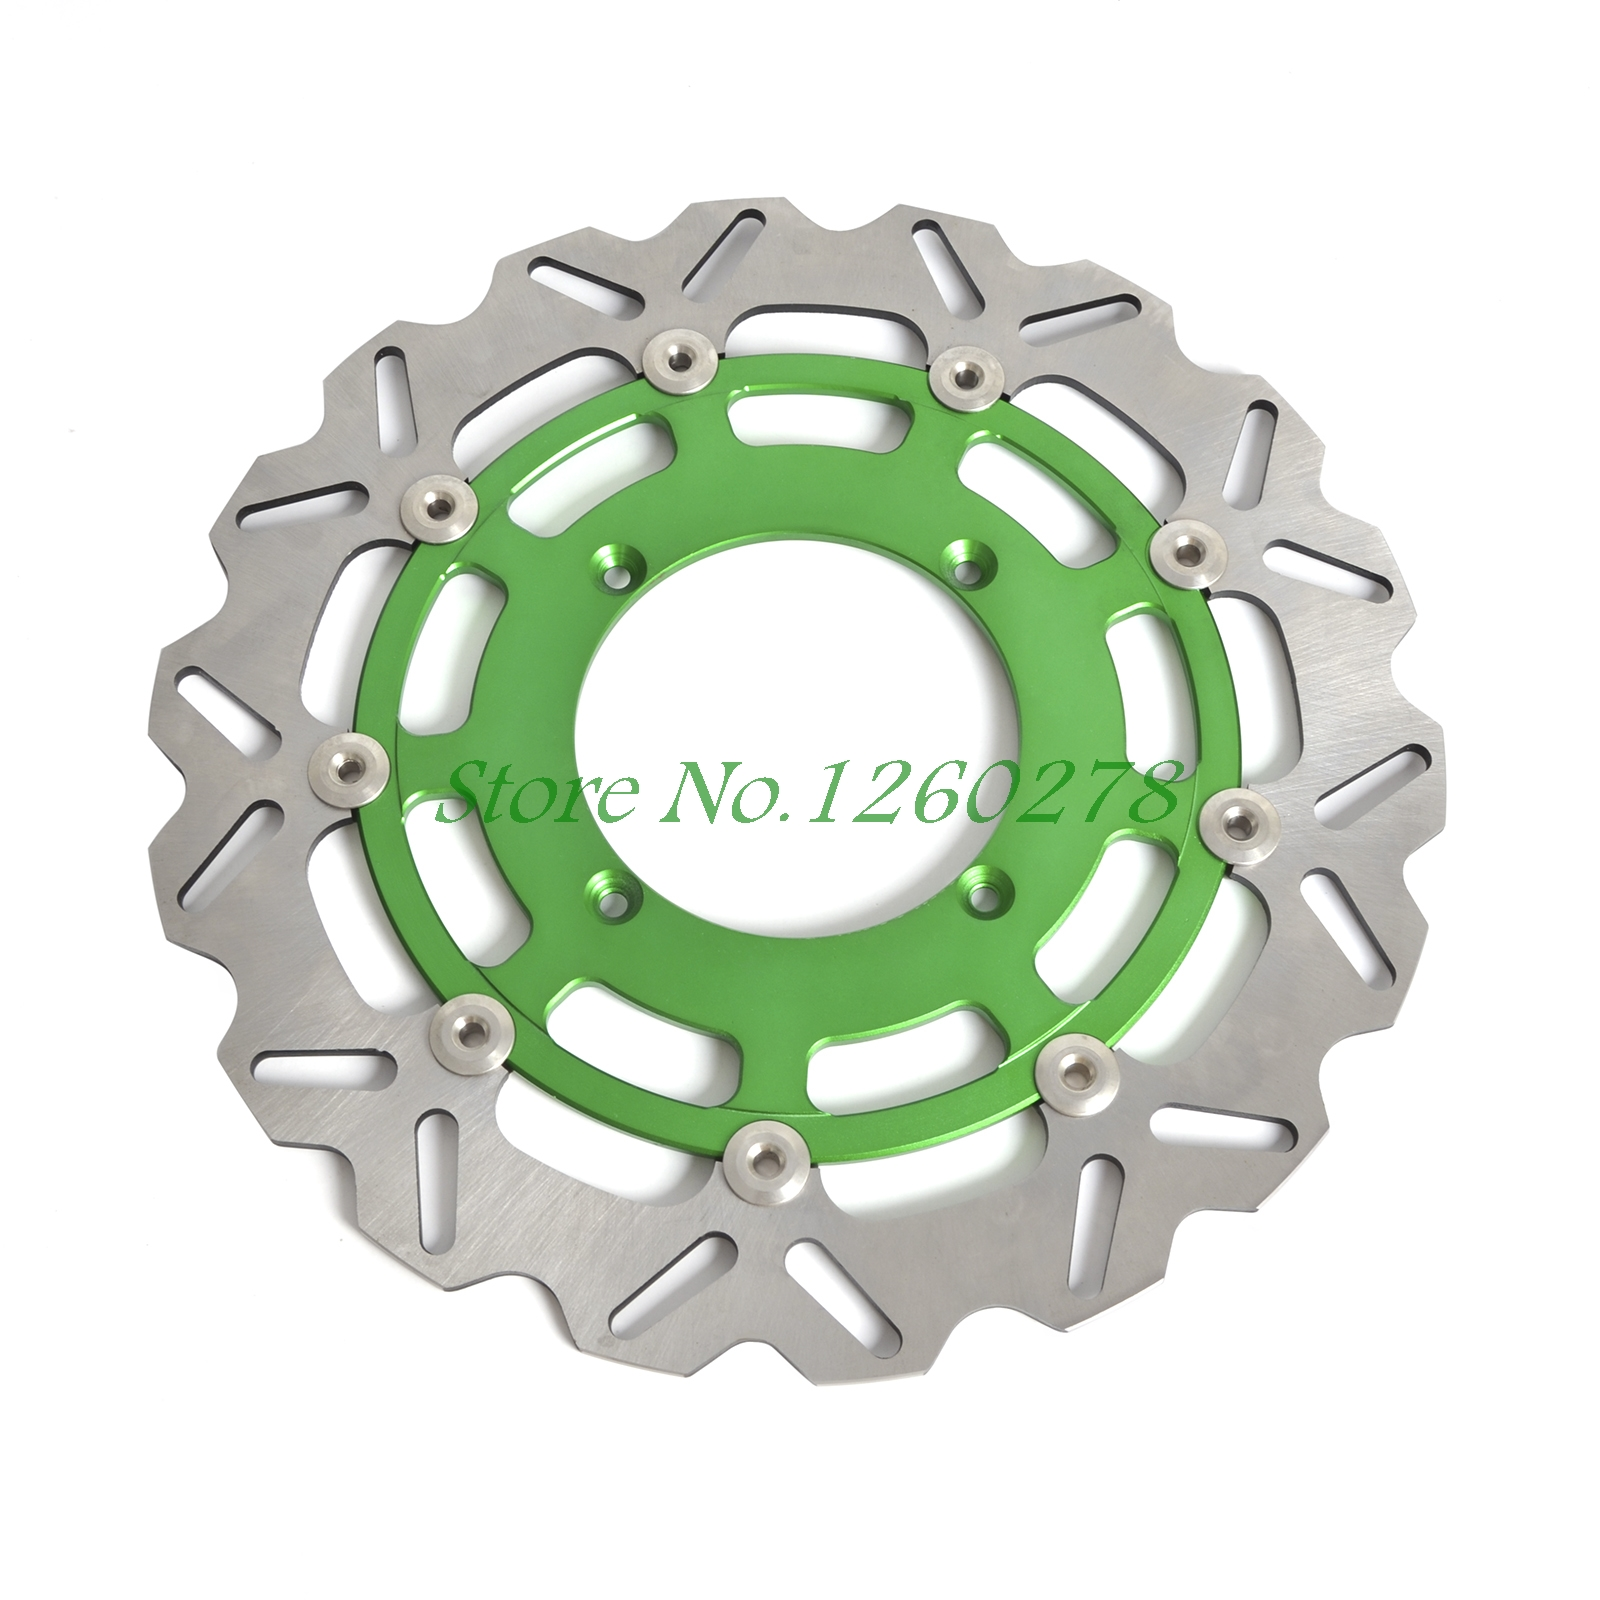 320mm Supermoto Racing Floating Front Brake Disc/Rotor For Kawasaki KX125 KX250 2006-2008 KX250F KX450F KLX450R 2006-2017